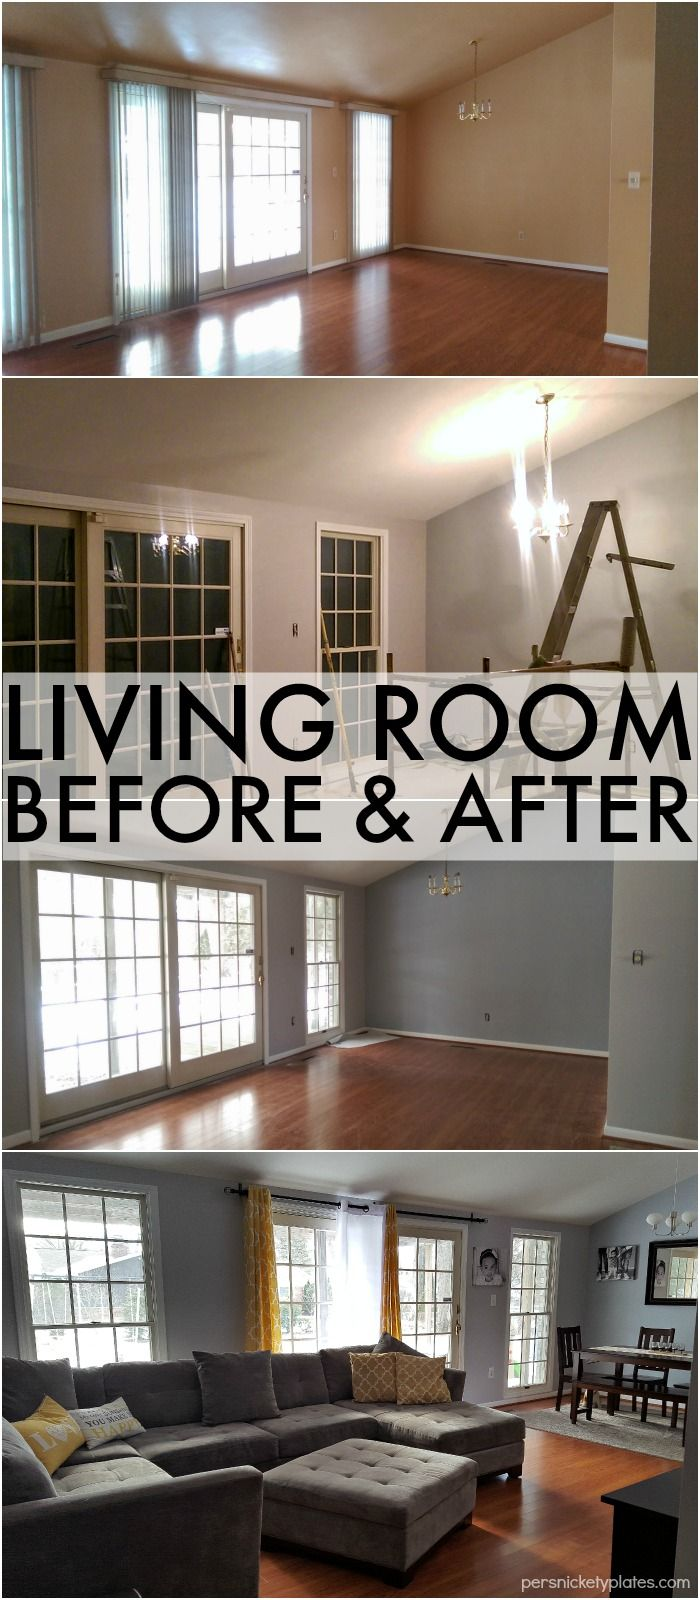 Before And After Pictures Of Our Living Room Dining Done On A Budget Changing Paint Makes Huge Difference